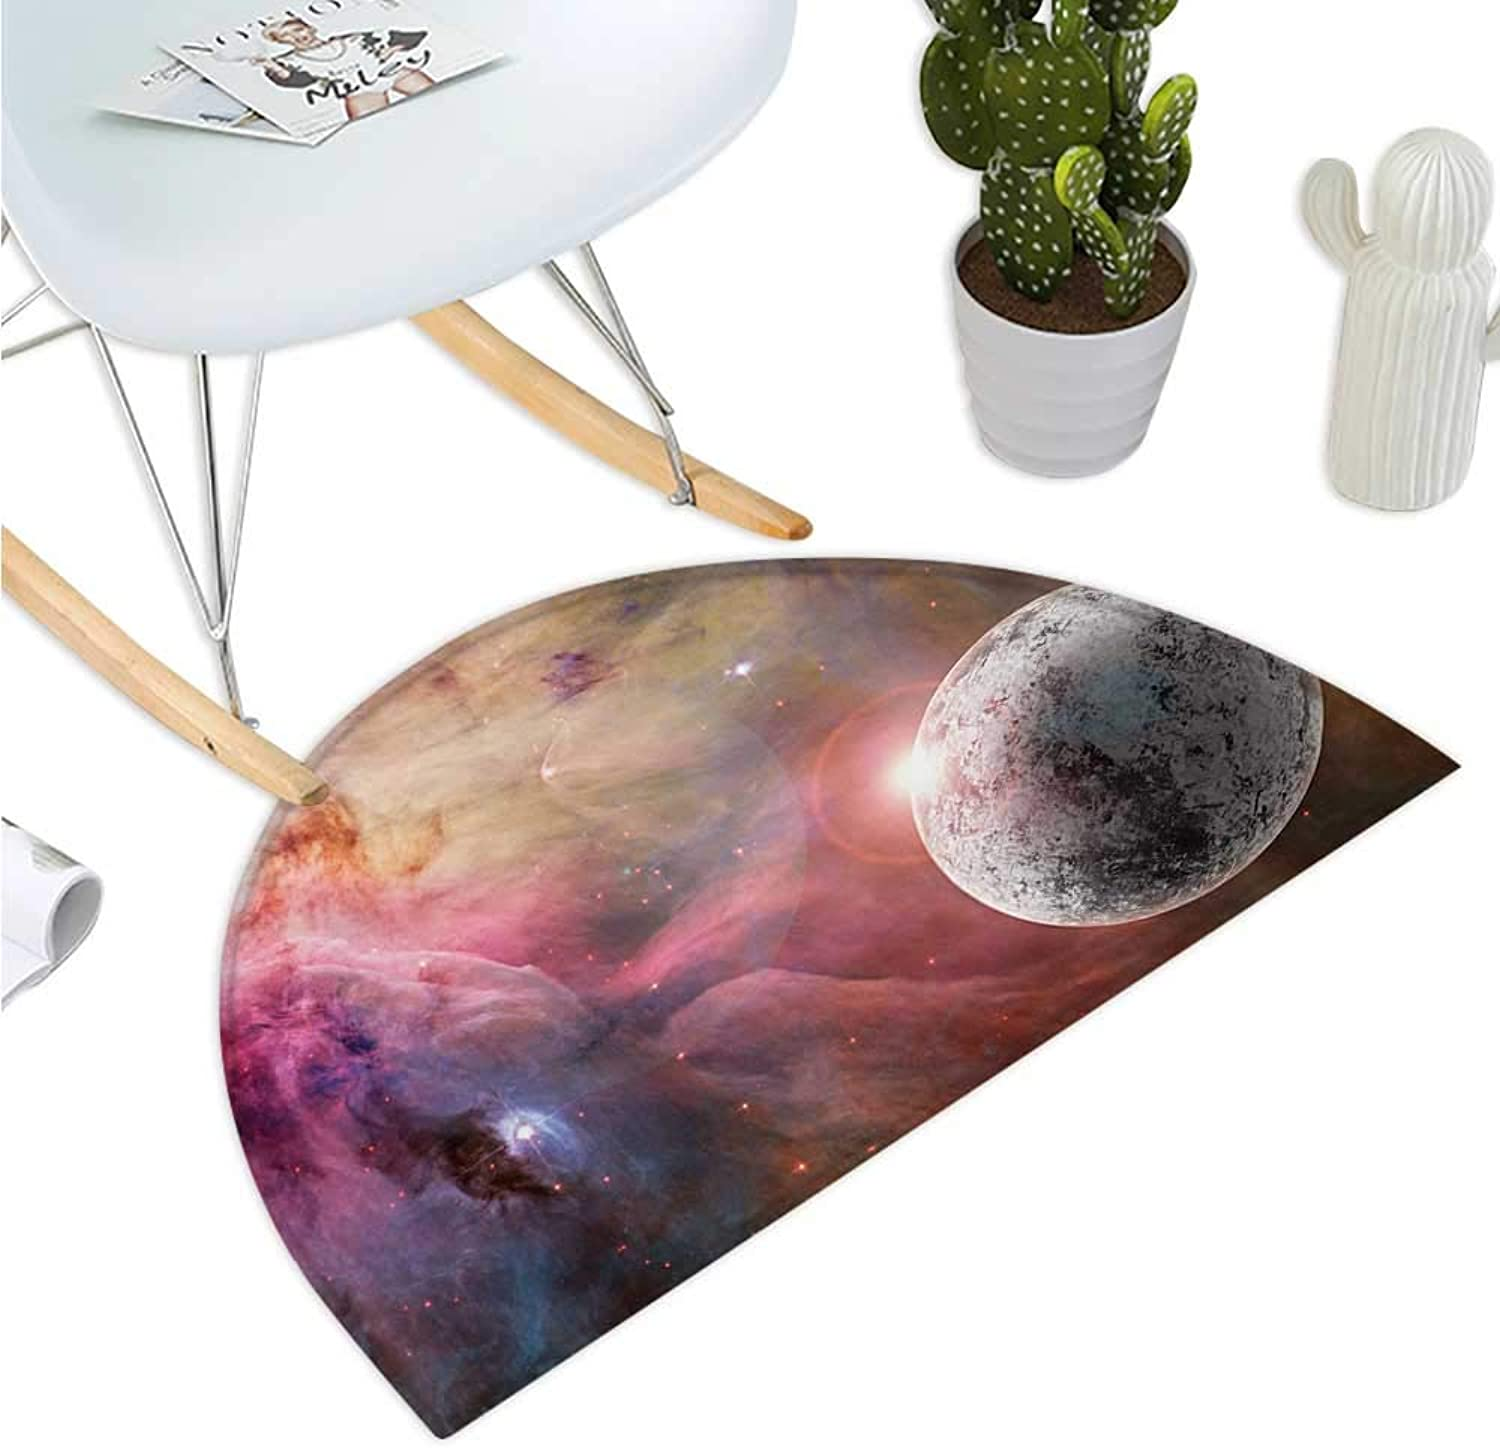 Outer Space Semicircular Cushion Unknown Frozen Planet in a Star Field with Circular Nebula Fog Galactic Energy Image Halfmoon doormats H 39.3  xD 59  Pink